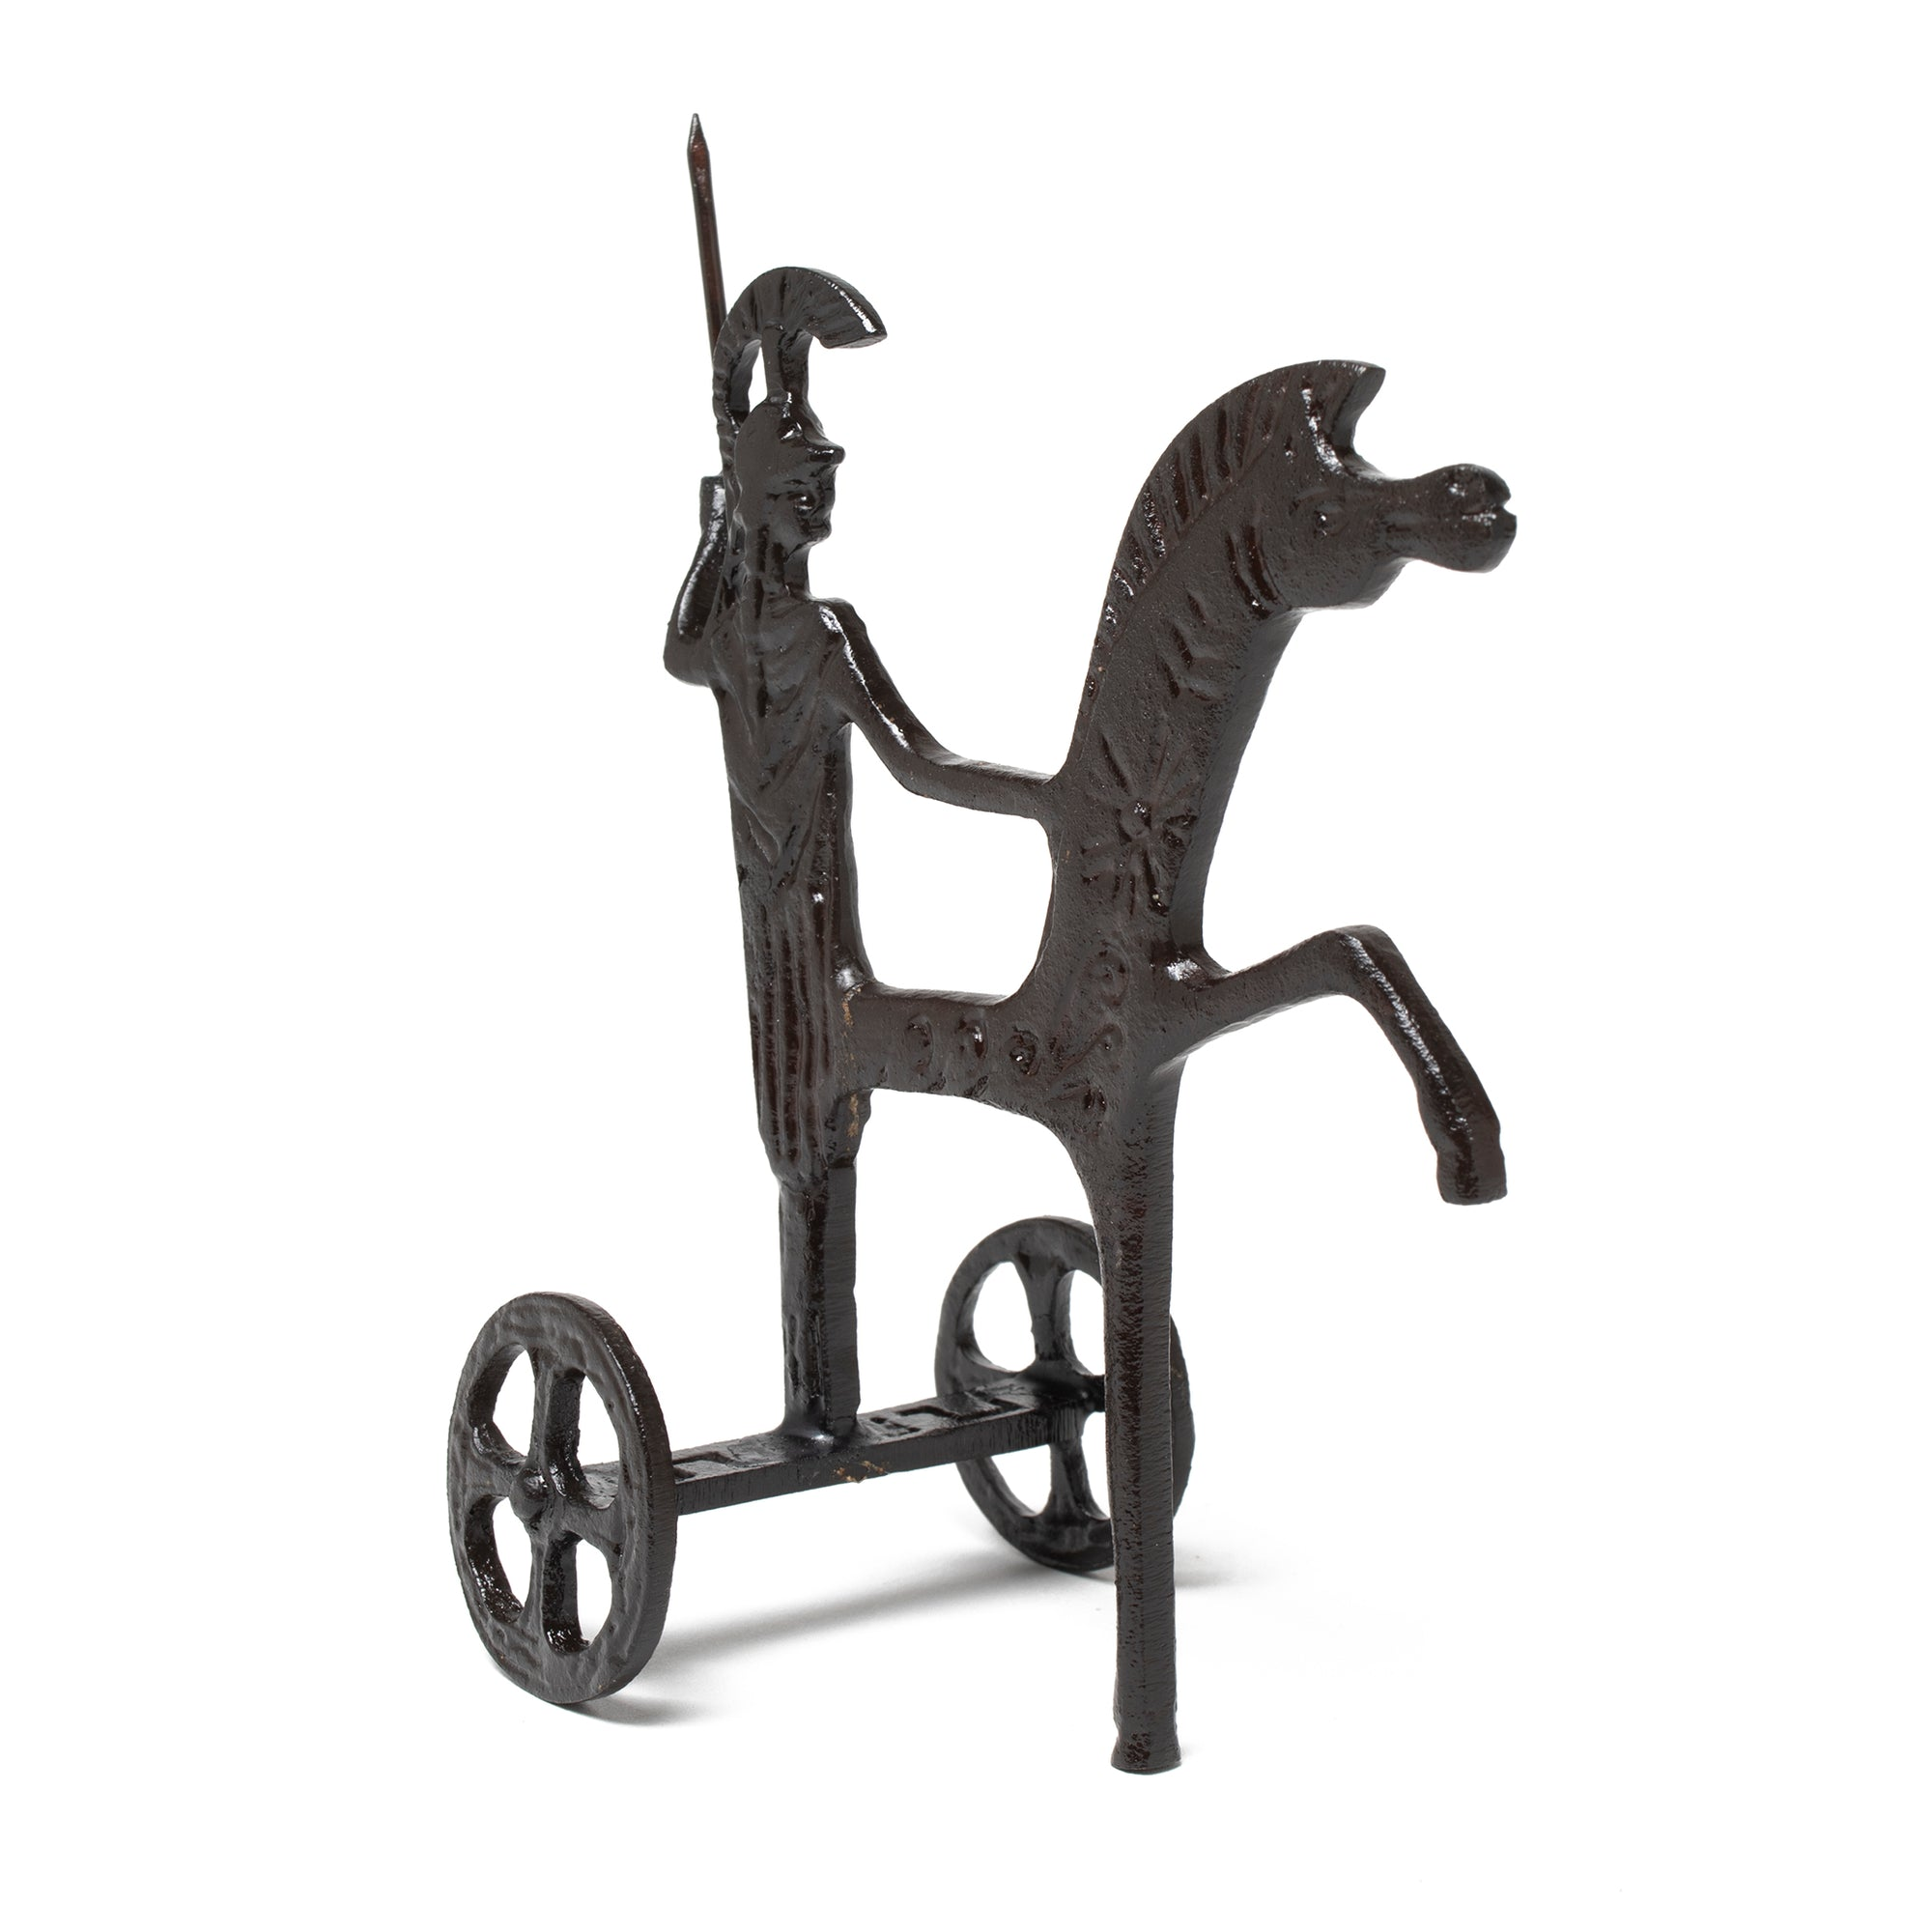 Greek Chariot Sculpture - Cast Brass Reproduction | Getty Store